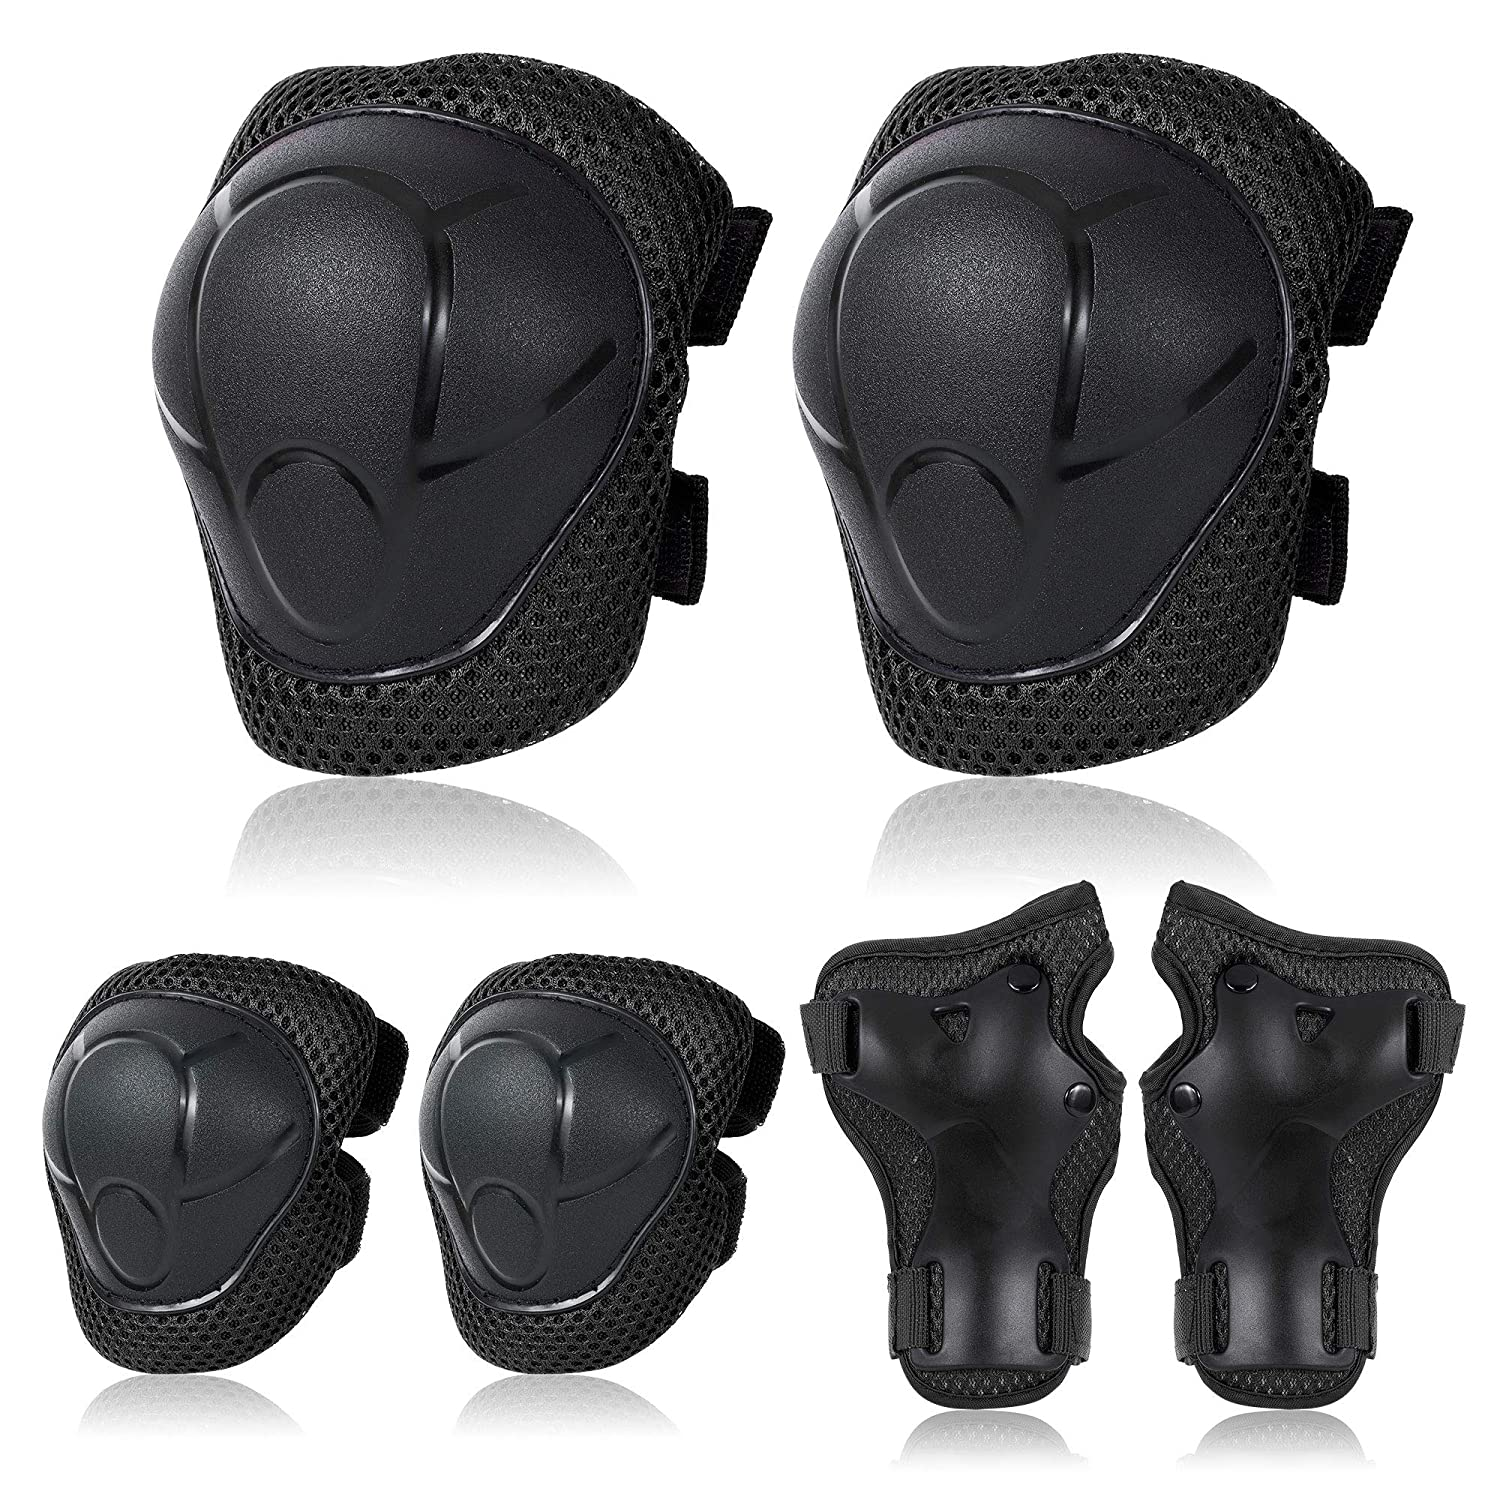 6Pcs Elbow Wrist Knee Pads Guards For Kids Girls Boys Skating Safety Gear Set